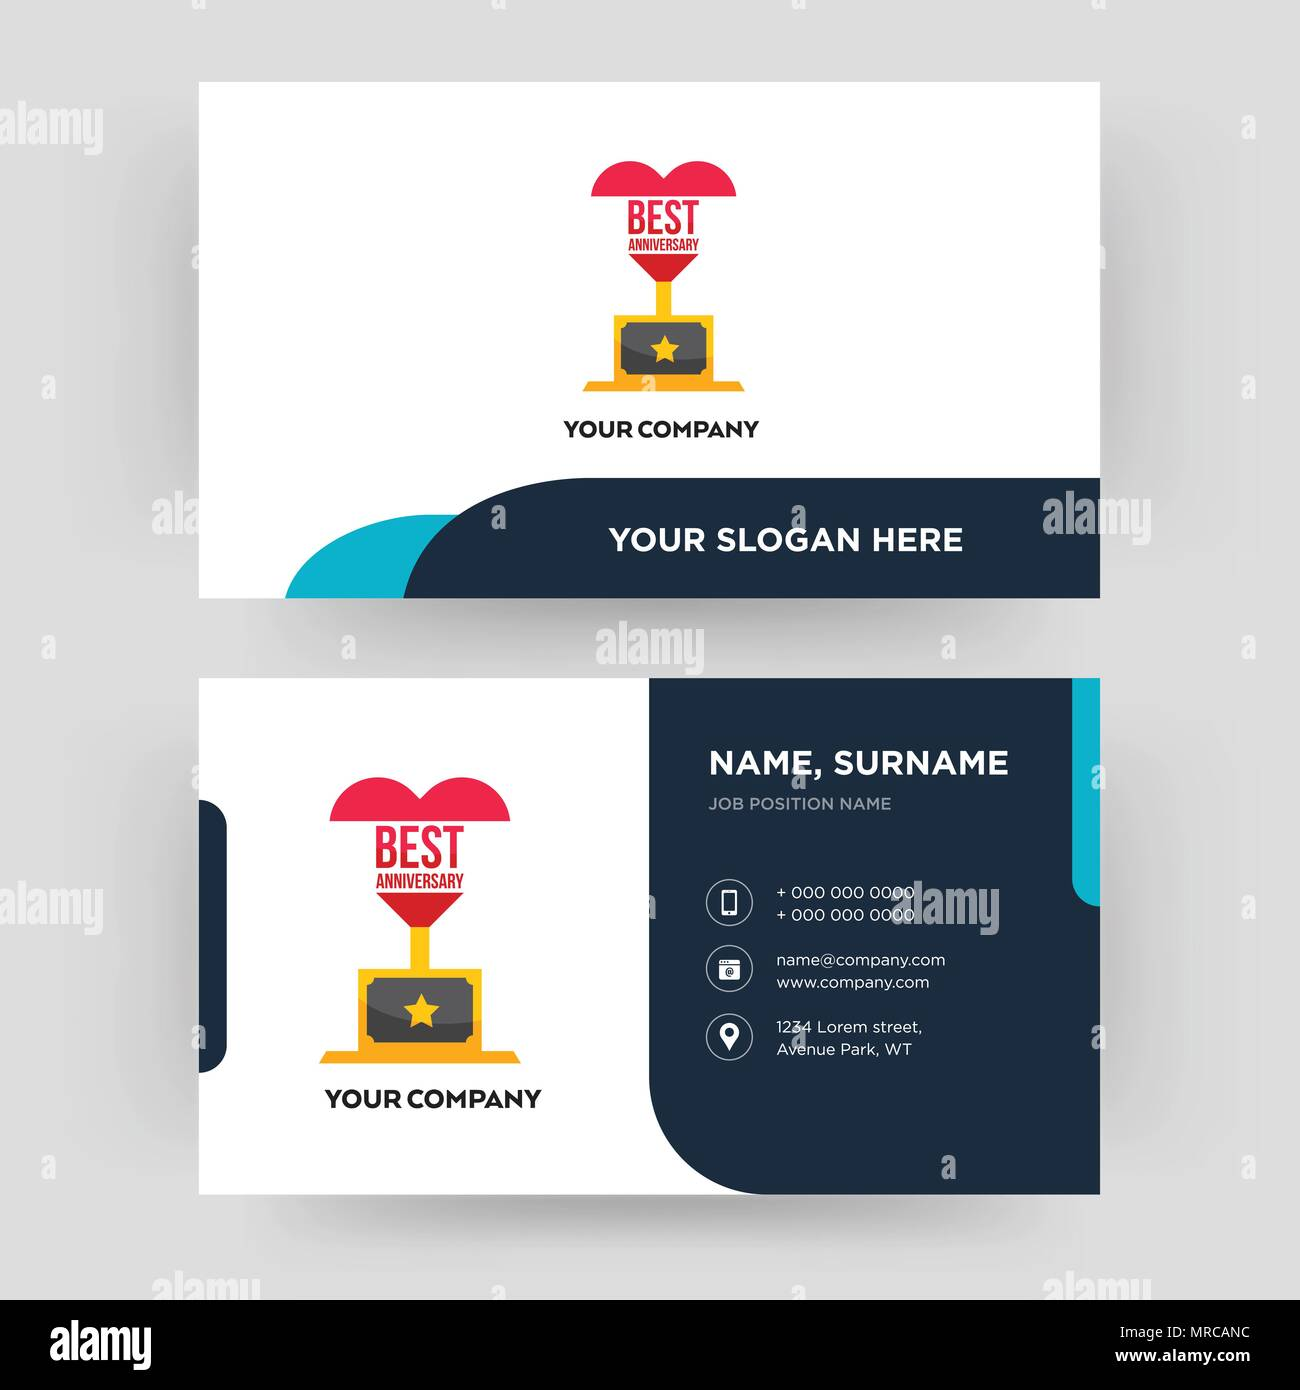 Best anniversary business card design template visiting for your best anniversary business card design template visiting for your company modern creative and clean identity card vector colourmoves